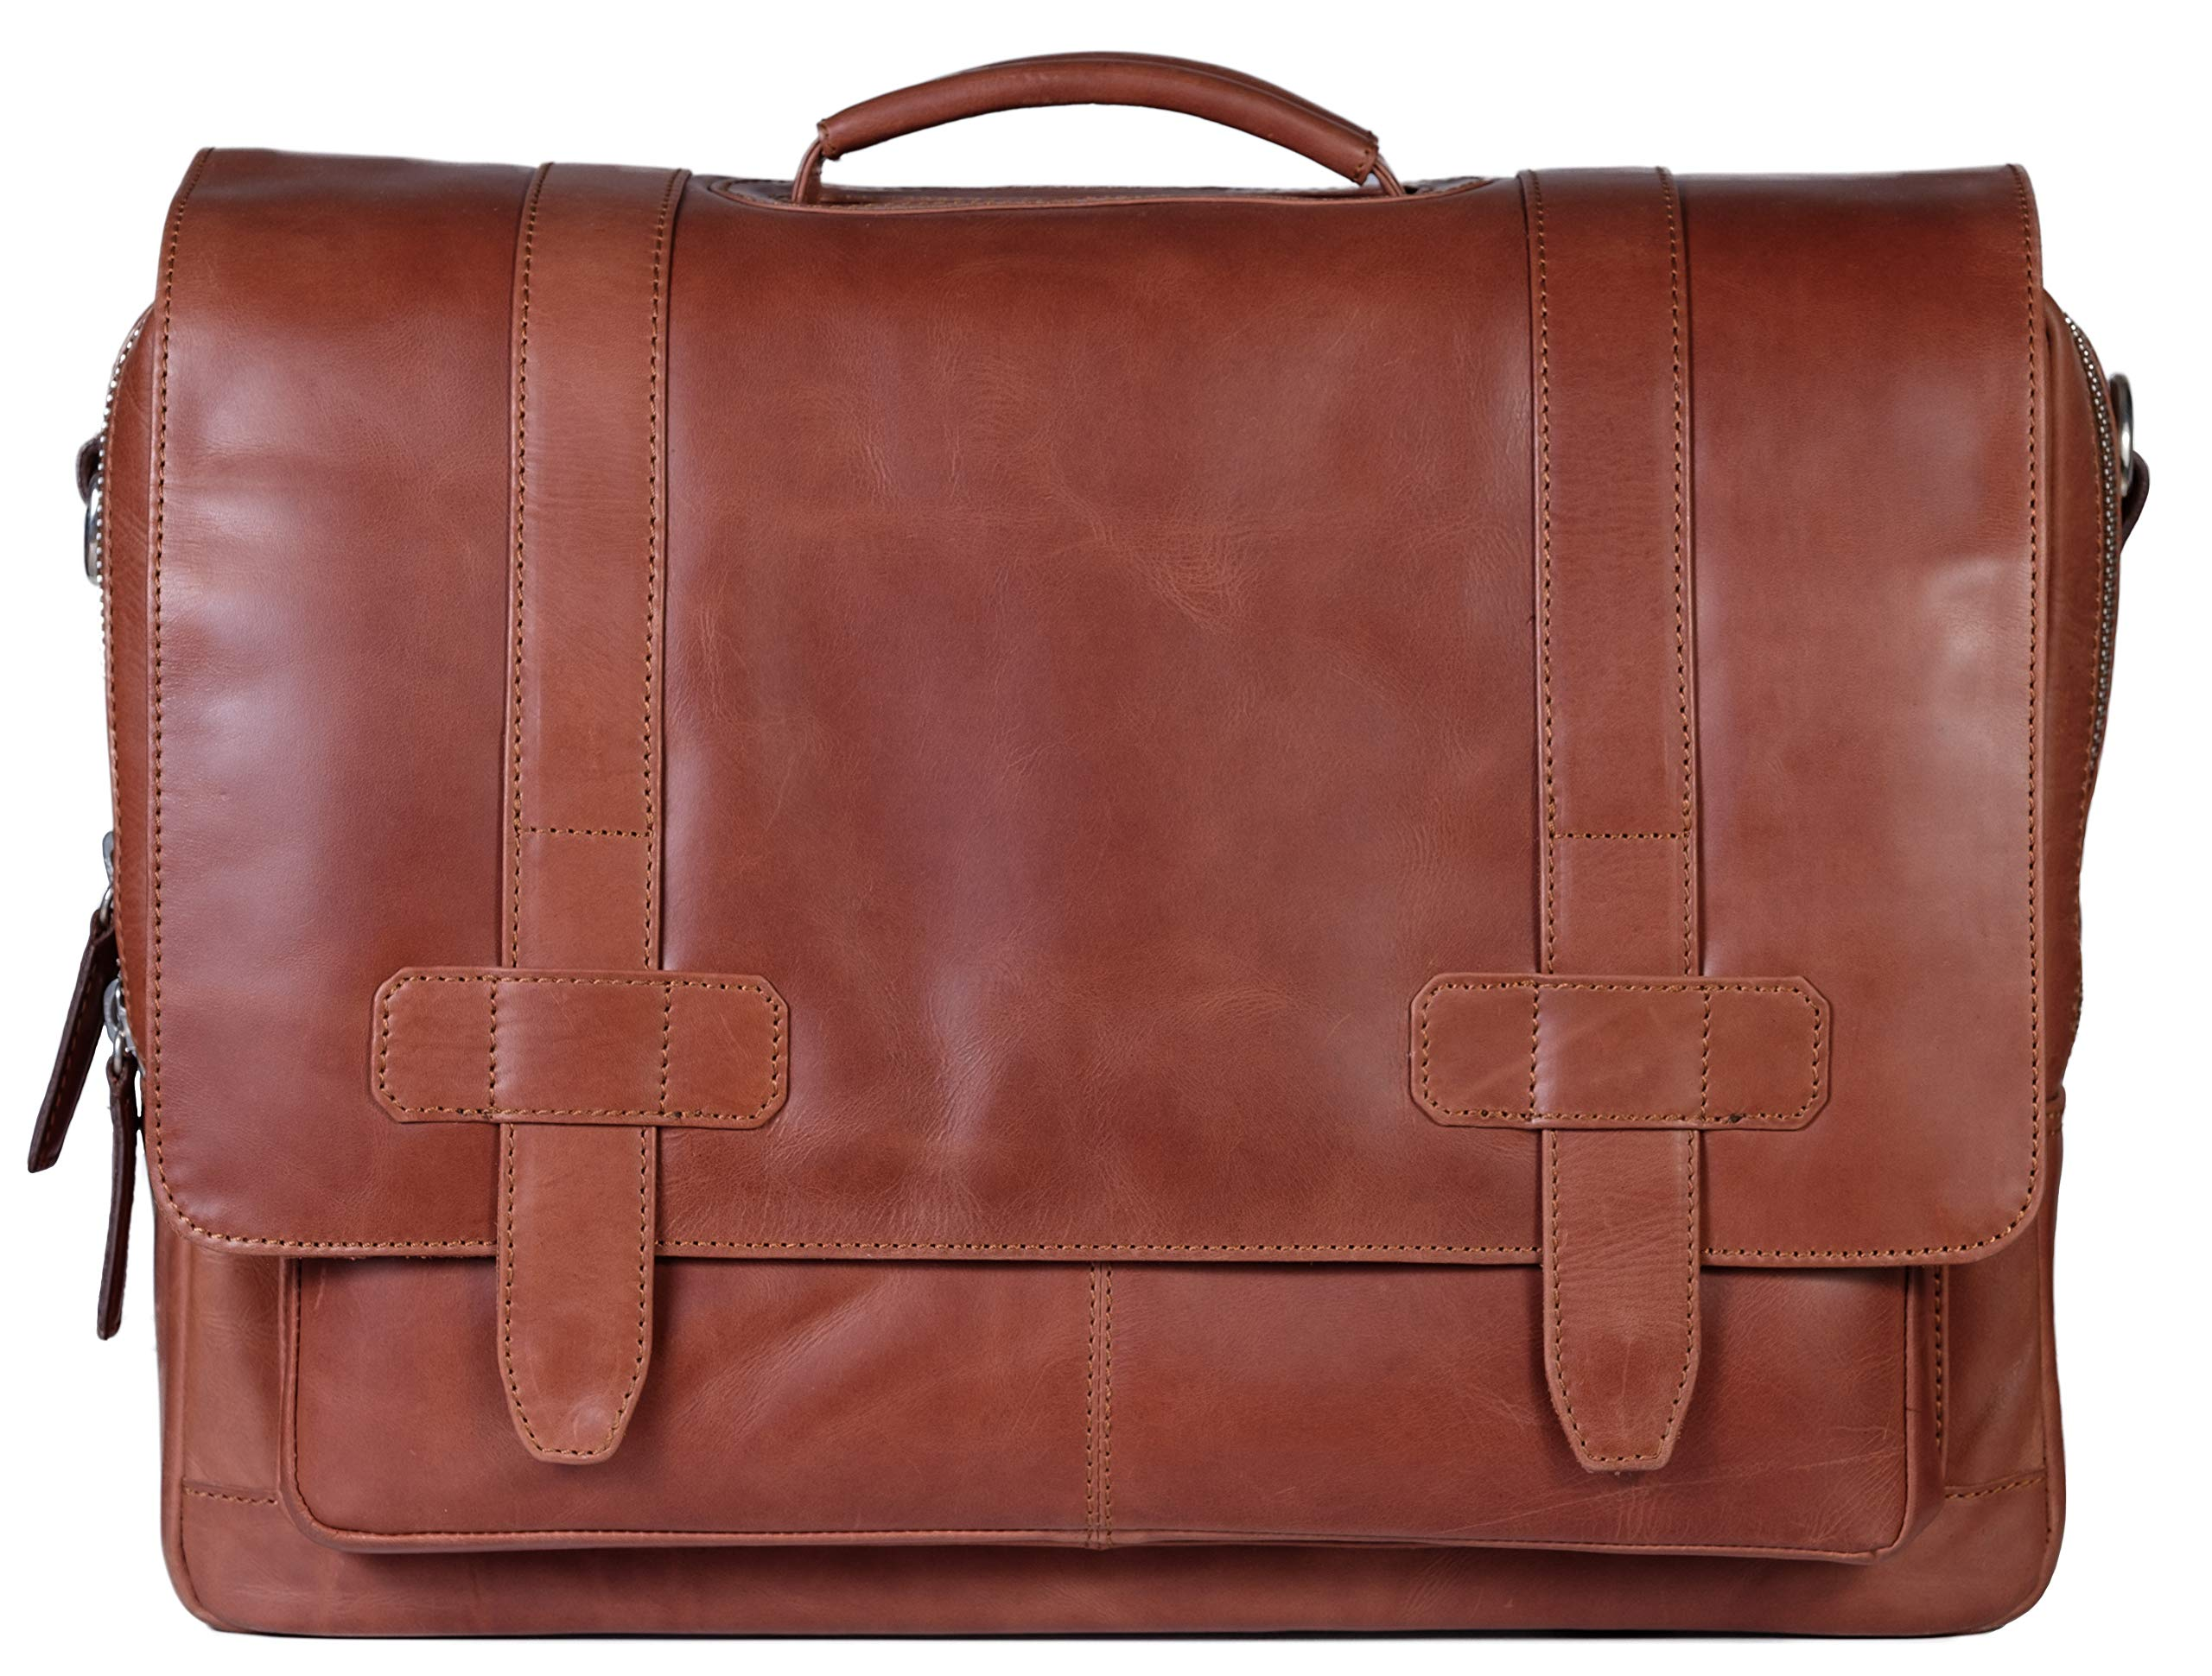 Mens Leather Messenger Bag, Briefcase, Logan, Leather Laptop Bag fits 15.4 inch Laptop, Adjustable Strap, 16 inch by 12 inch by 4 inch (Tan) by Ladderback